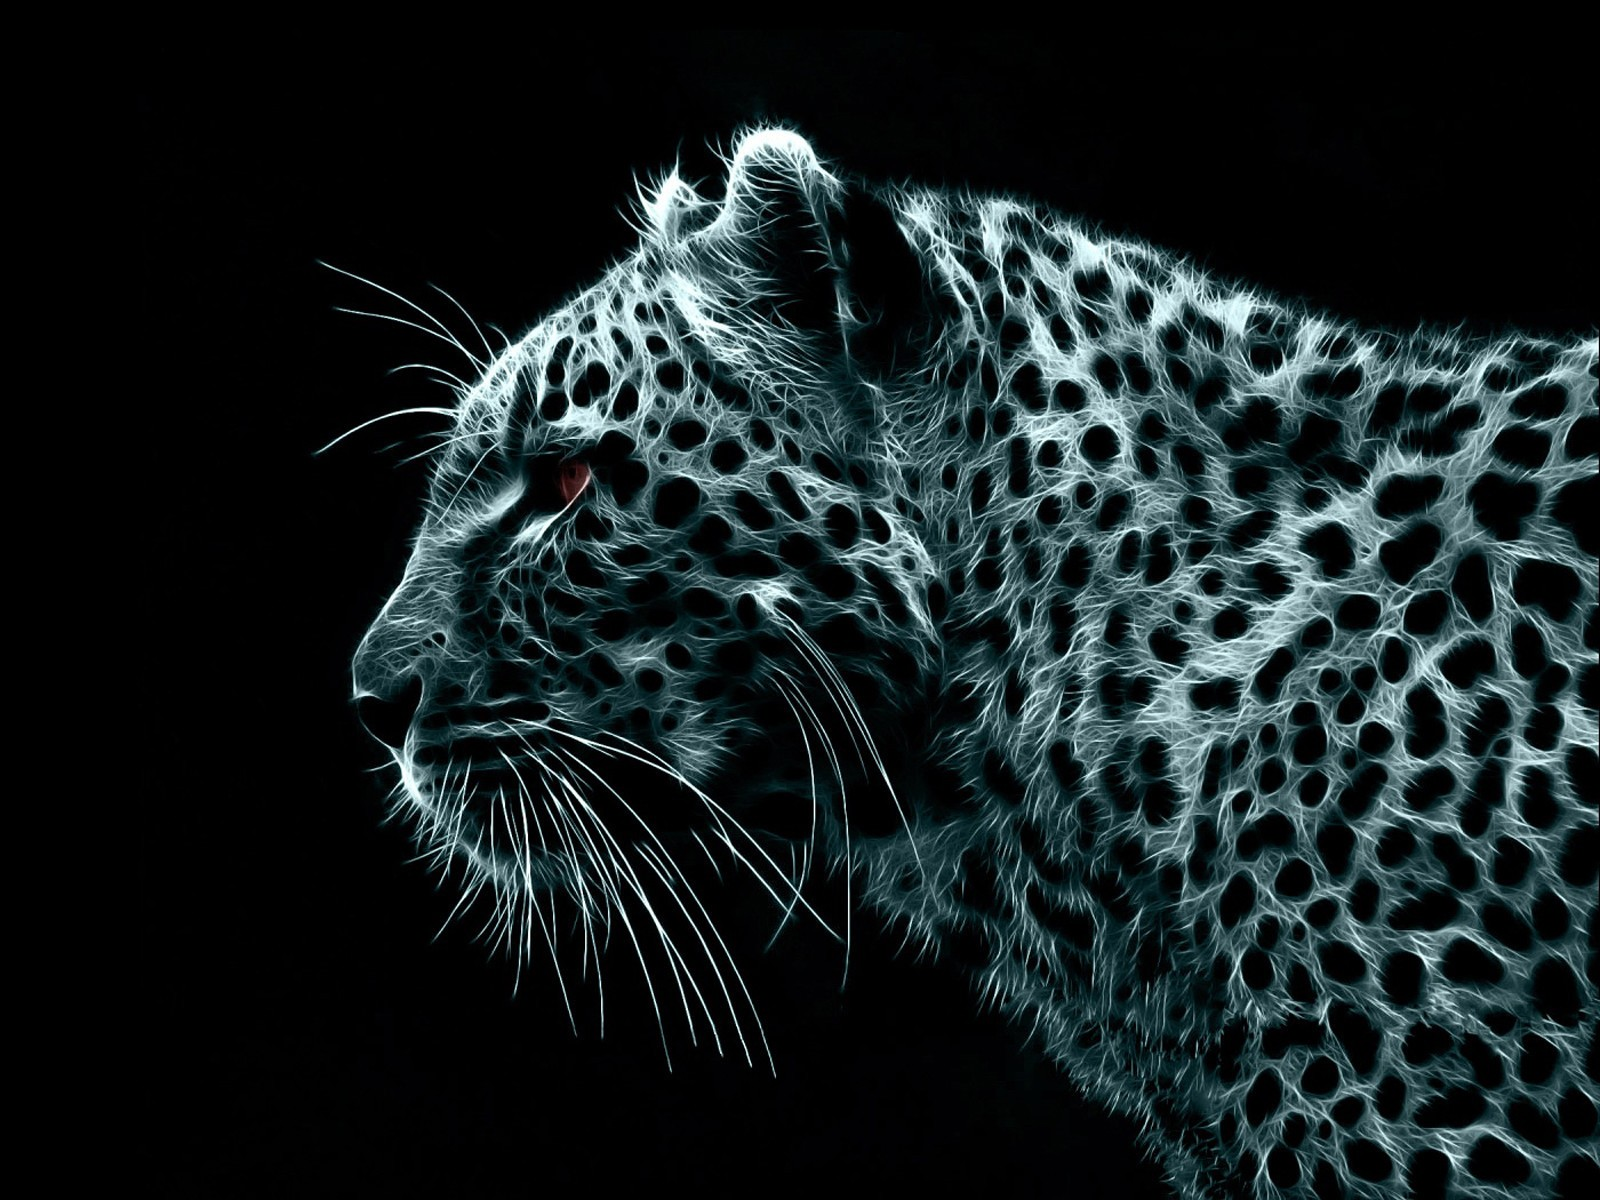 Leopard Abstract Wallpaper 1600x1200 px